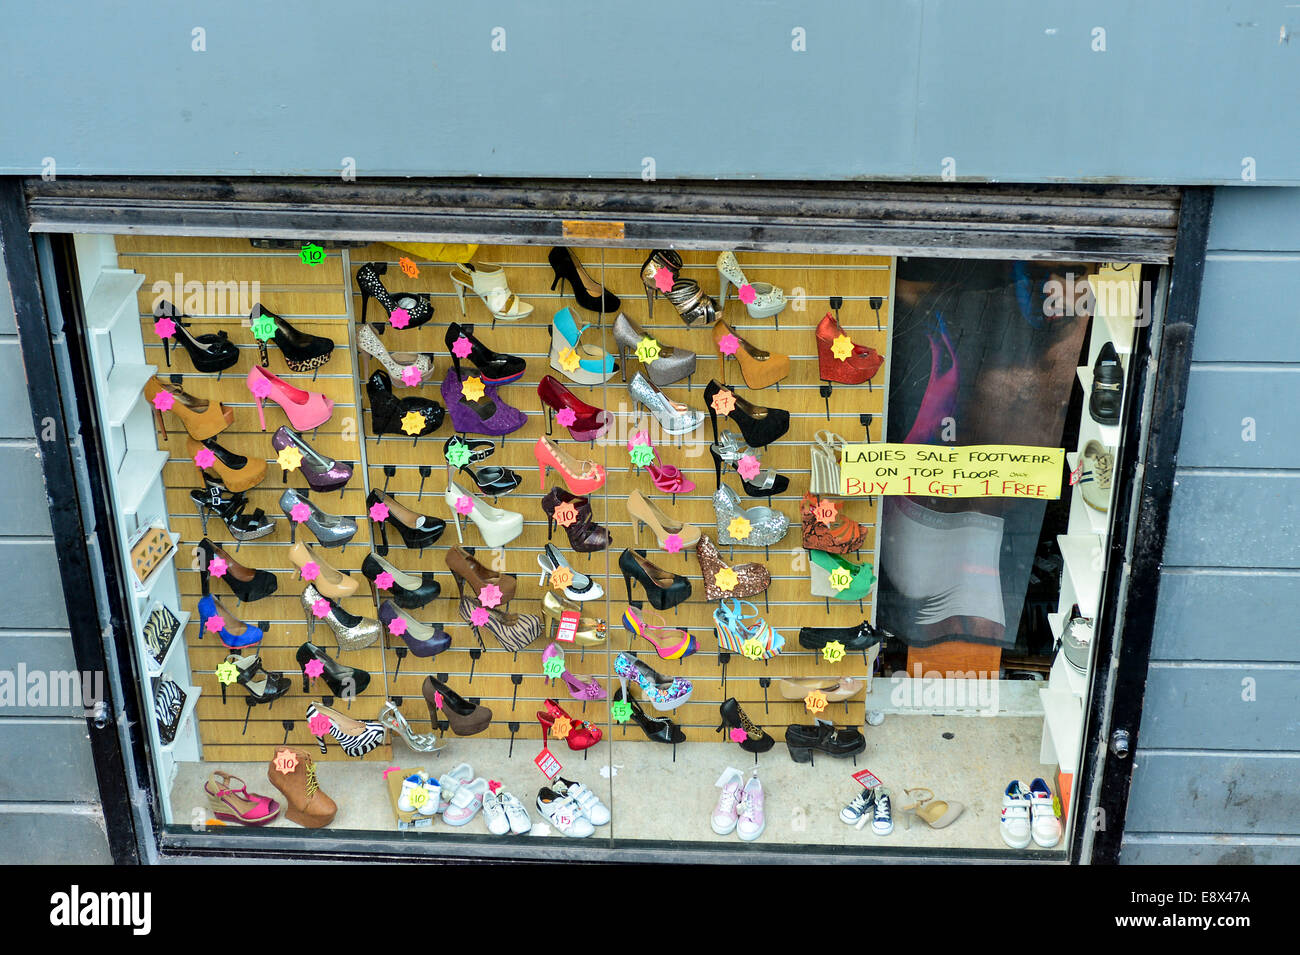 Stock Photo - Display of women's shoes in shop window, Derry, Londonderry, Northern Ireland. ©George Sweeney - Stock Image